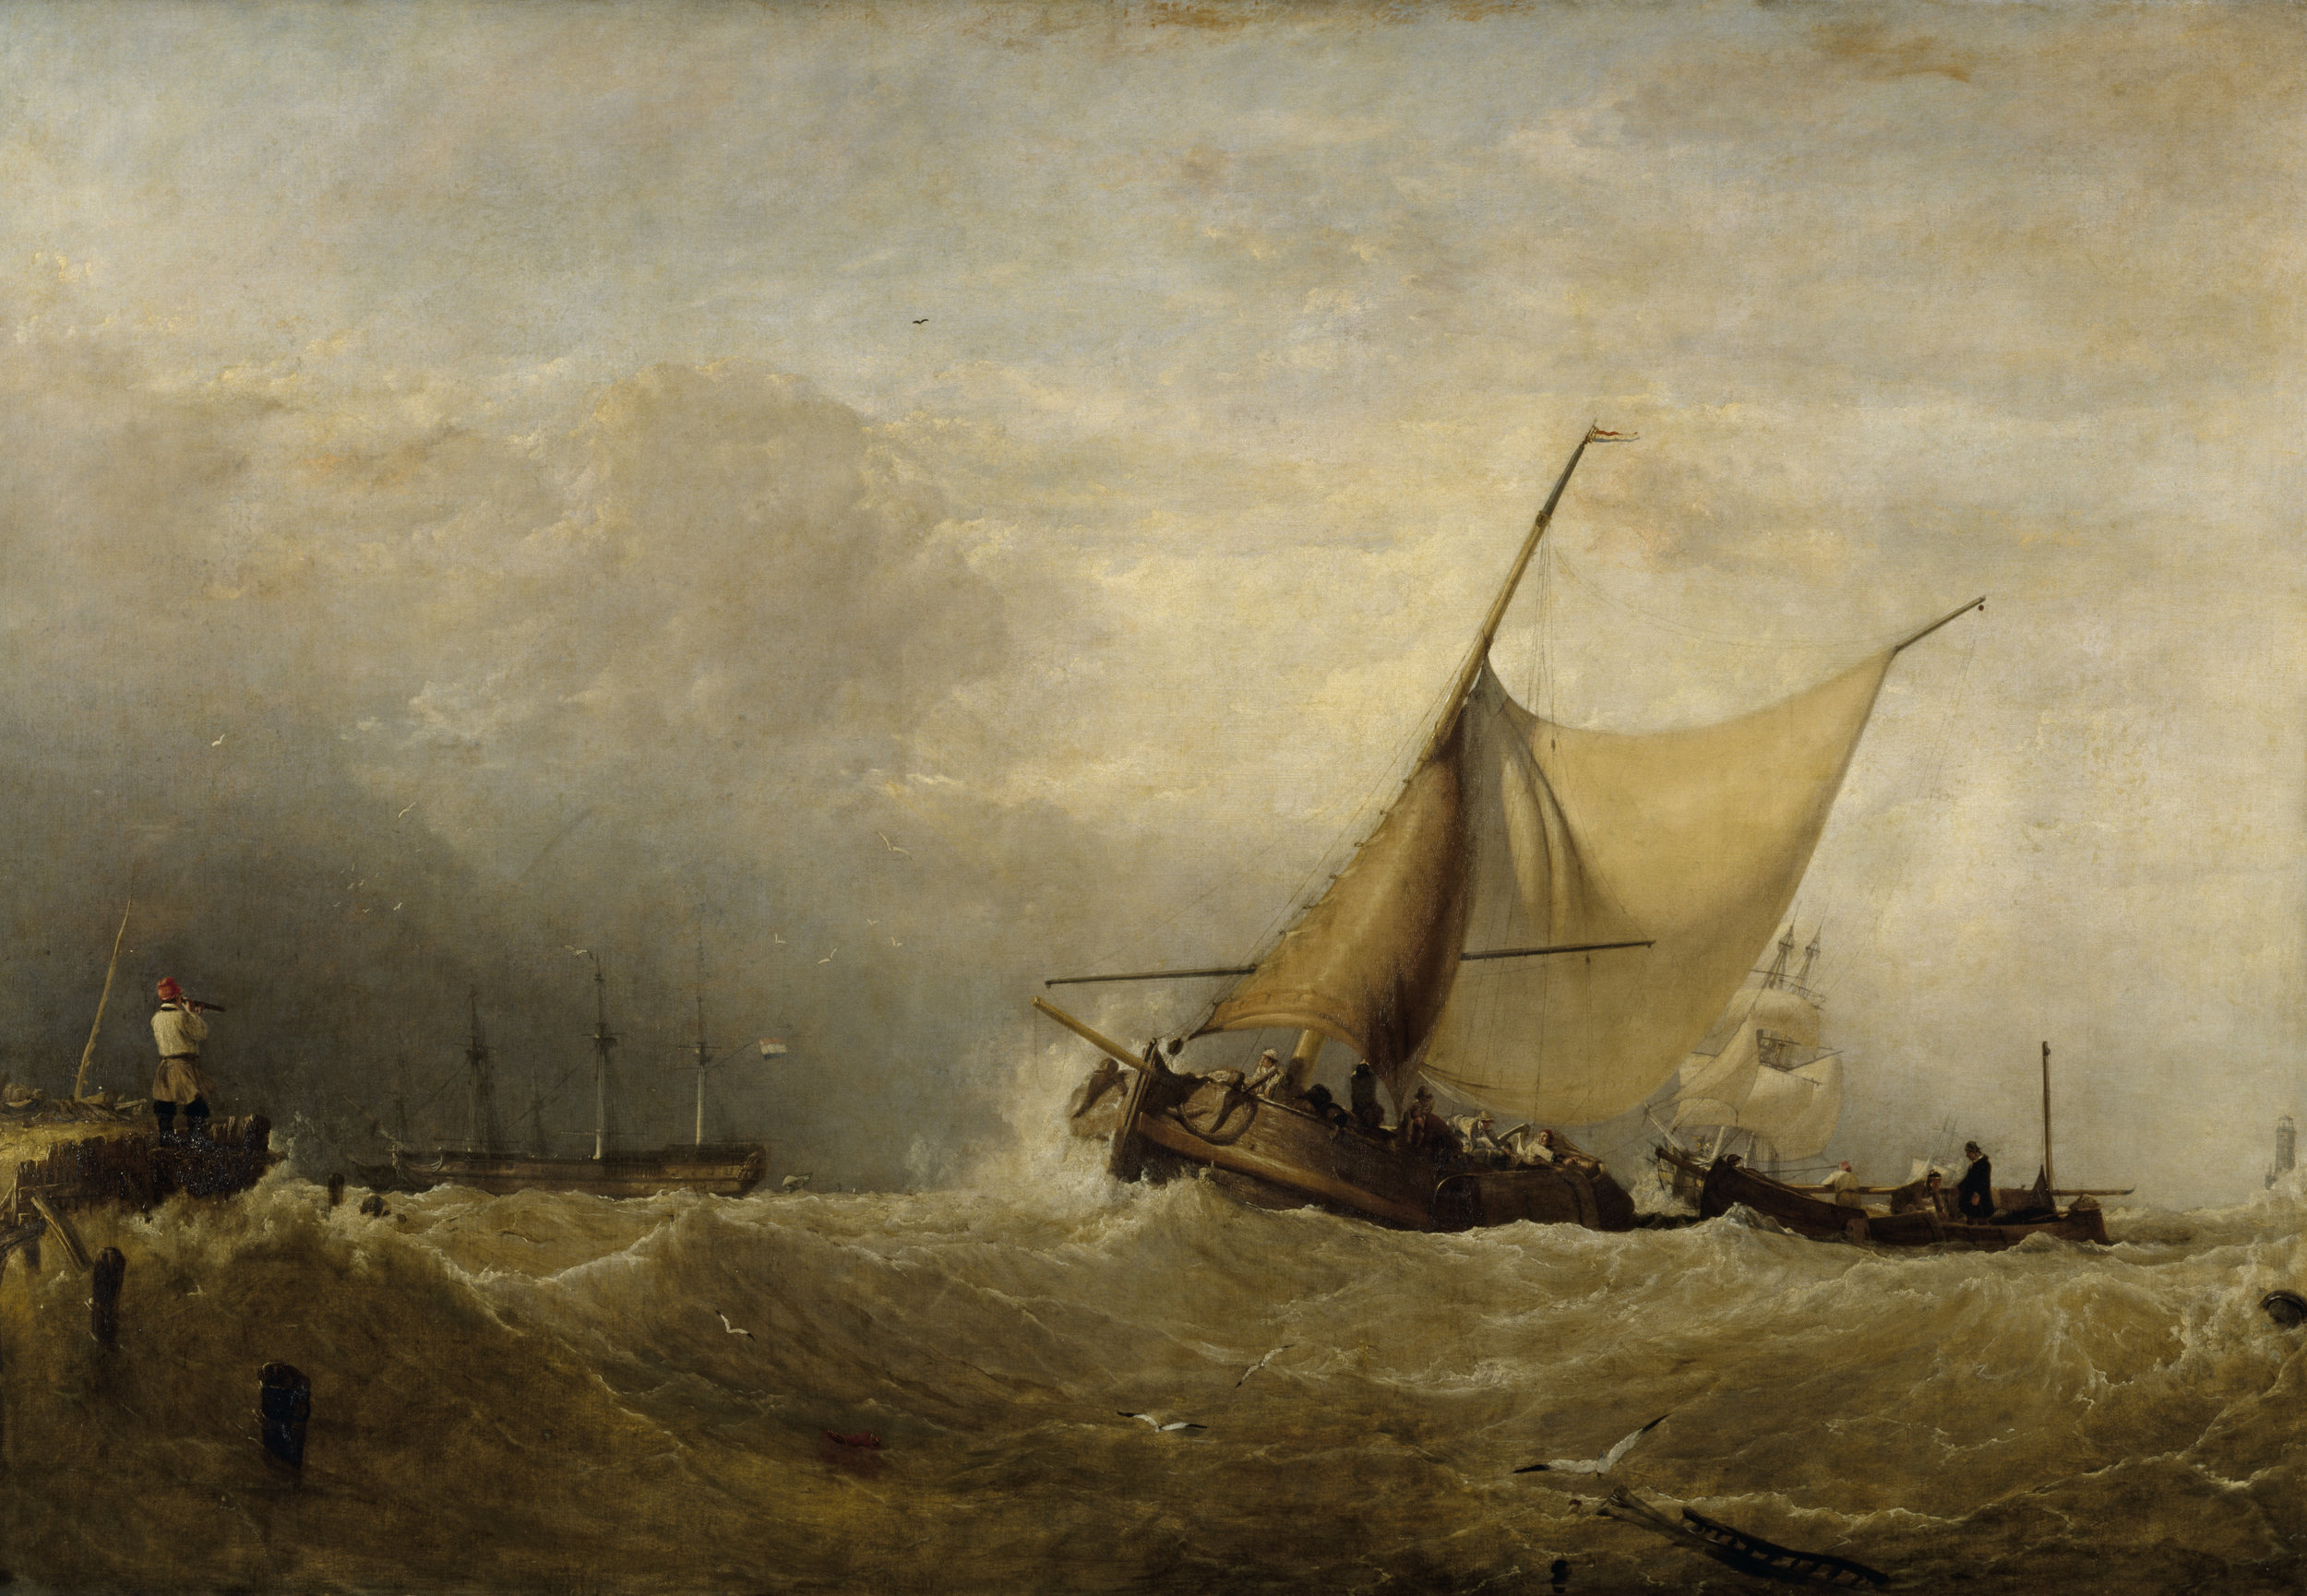 Heavy weather coming on, with vessels running to port, 1827 by Sir Augustus Wall Callcott (1779-1844) @National Trust Images.Derrick E. Witty.jpg